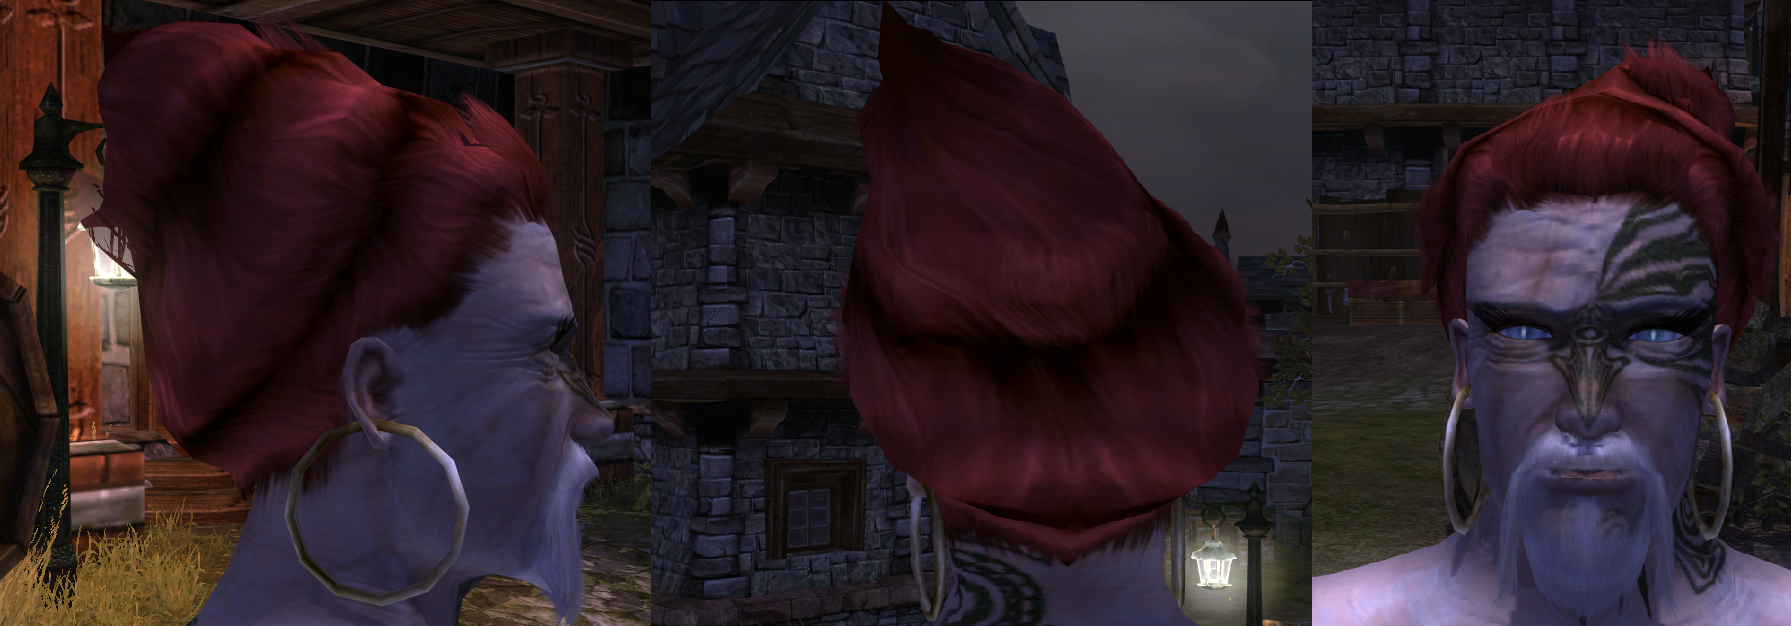 Redhead Wig - The Fable Wiki - Fable, Fable 2, Fable 3 ...